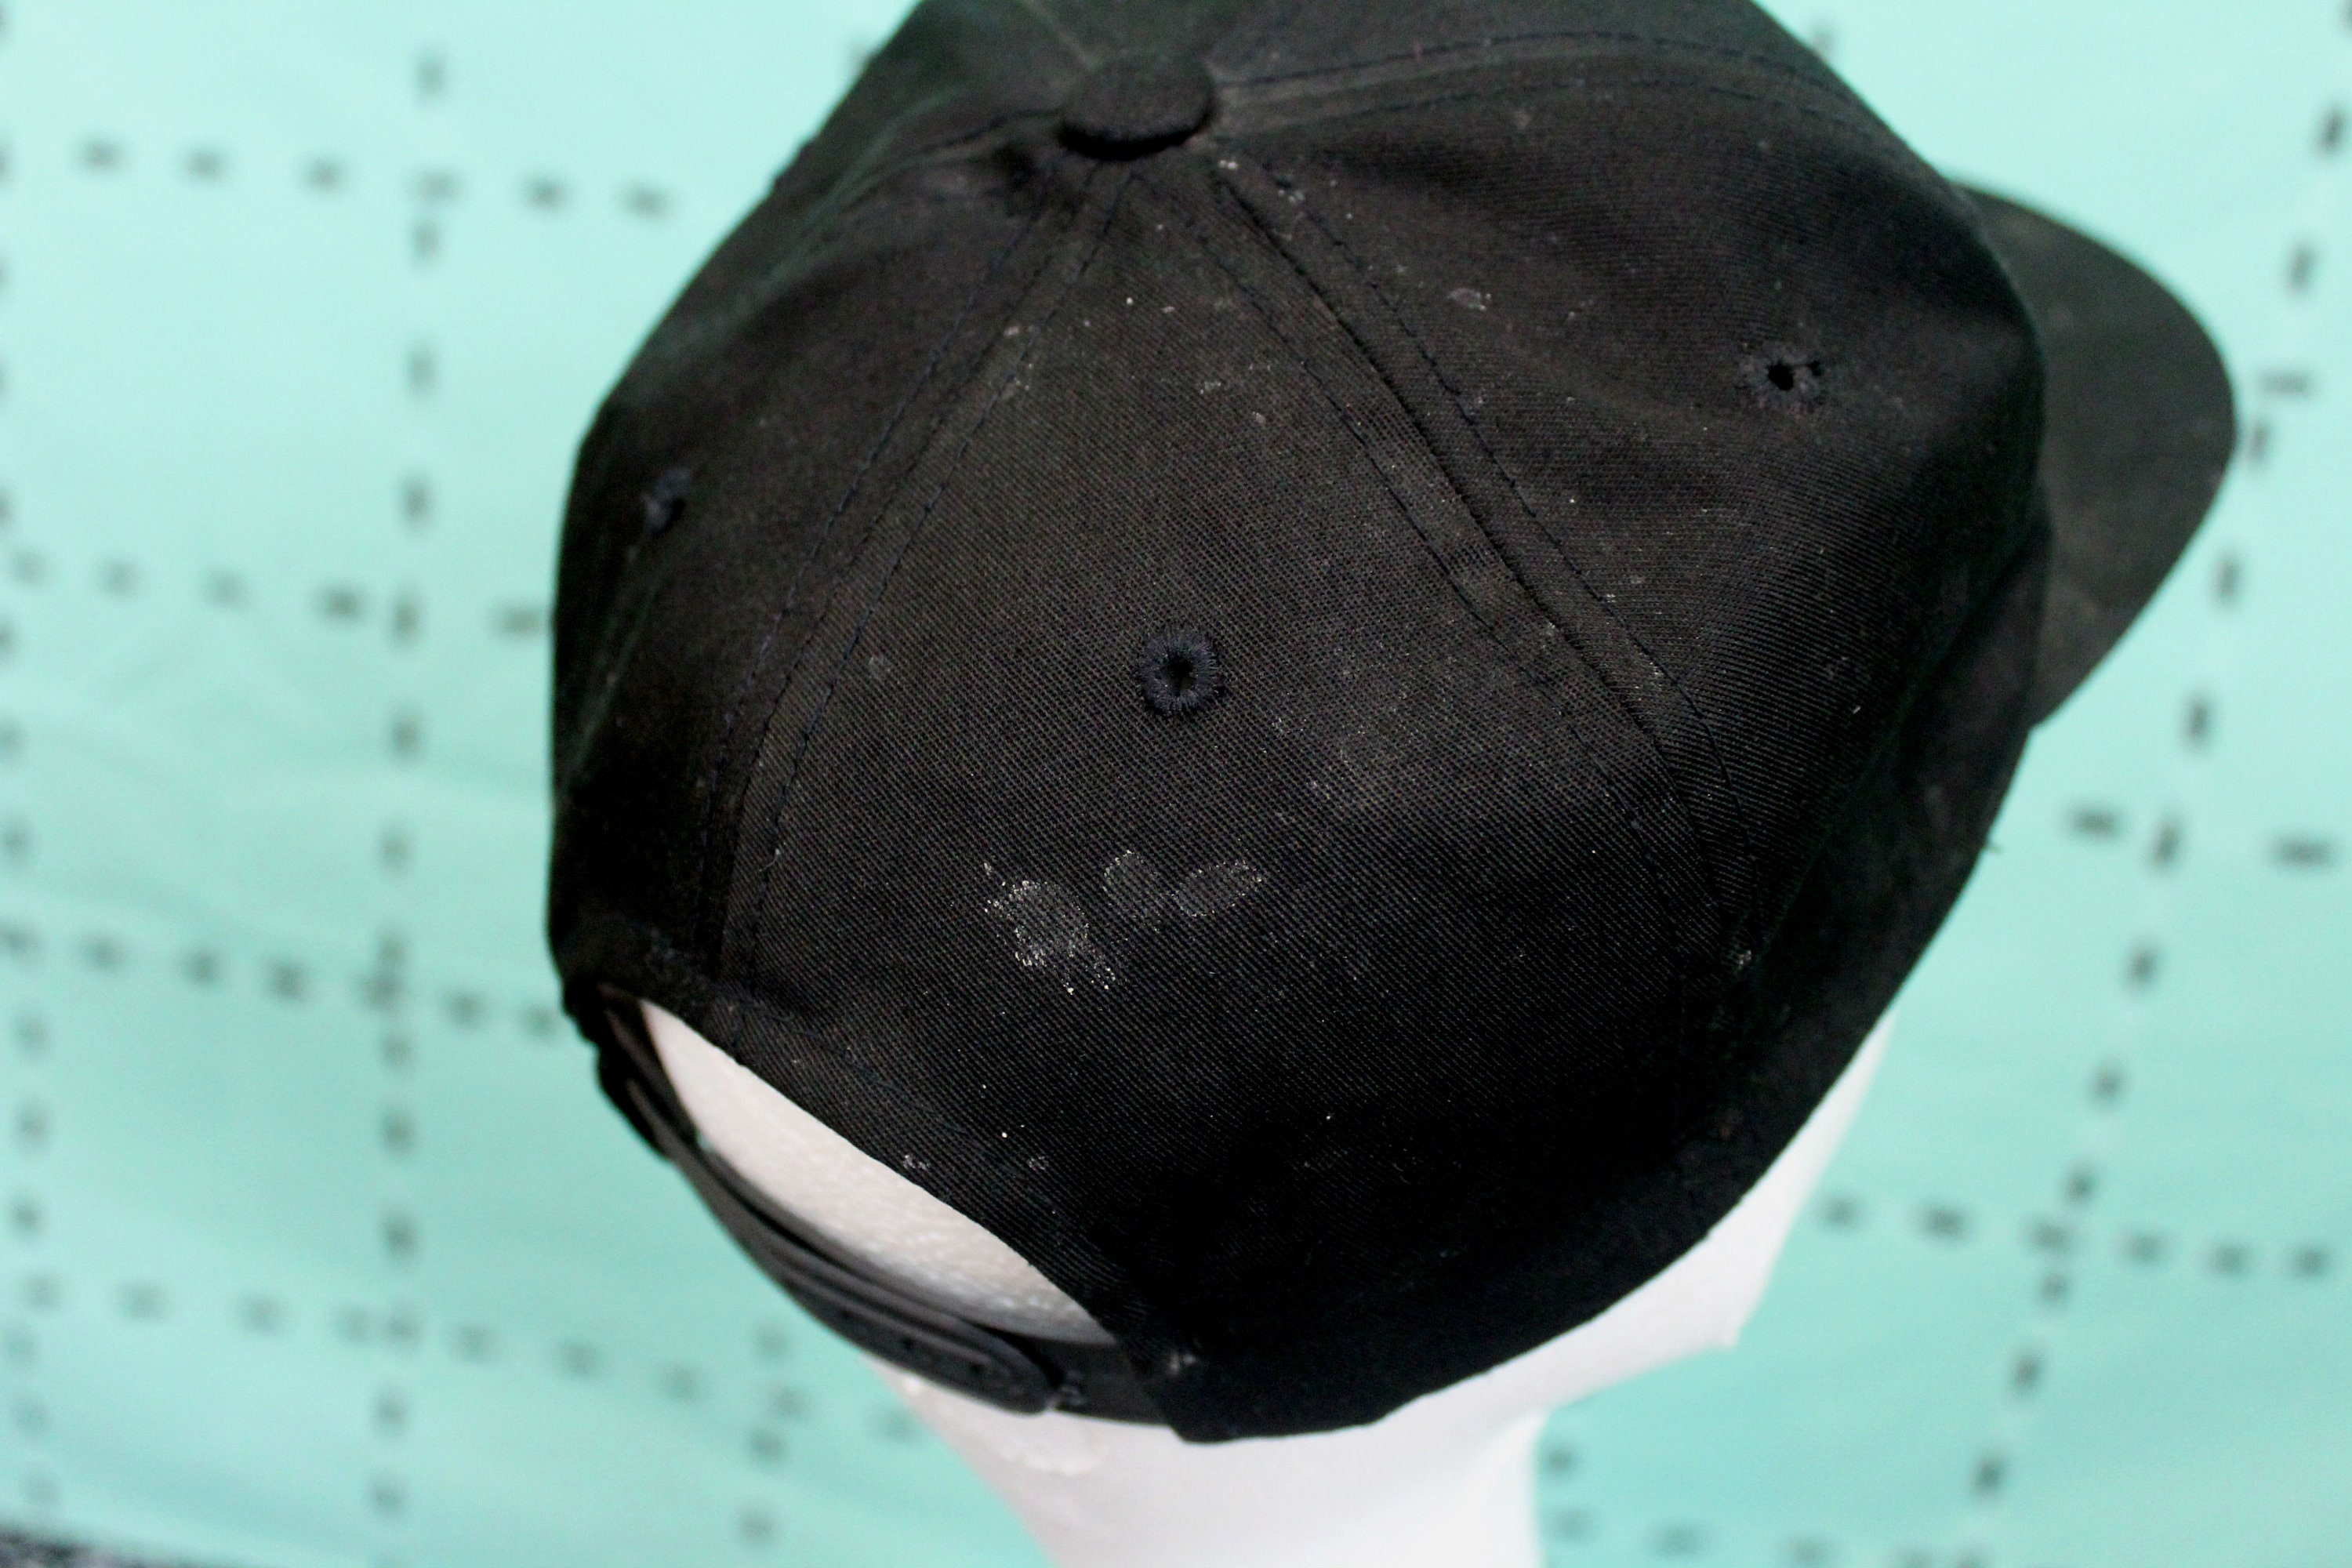 Nickelodeon Goosebumps Baseball Cap. Retro 90s Spooky Goosebumps Spiderweb  Nickelodeon Hat. Black And Green 90s Spooky Goosebumps Cap 00a1c4993d0f